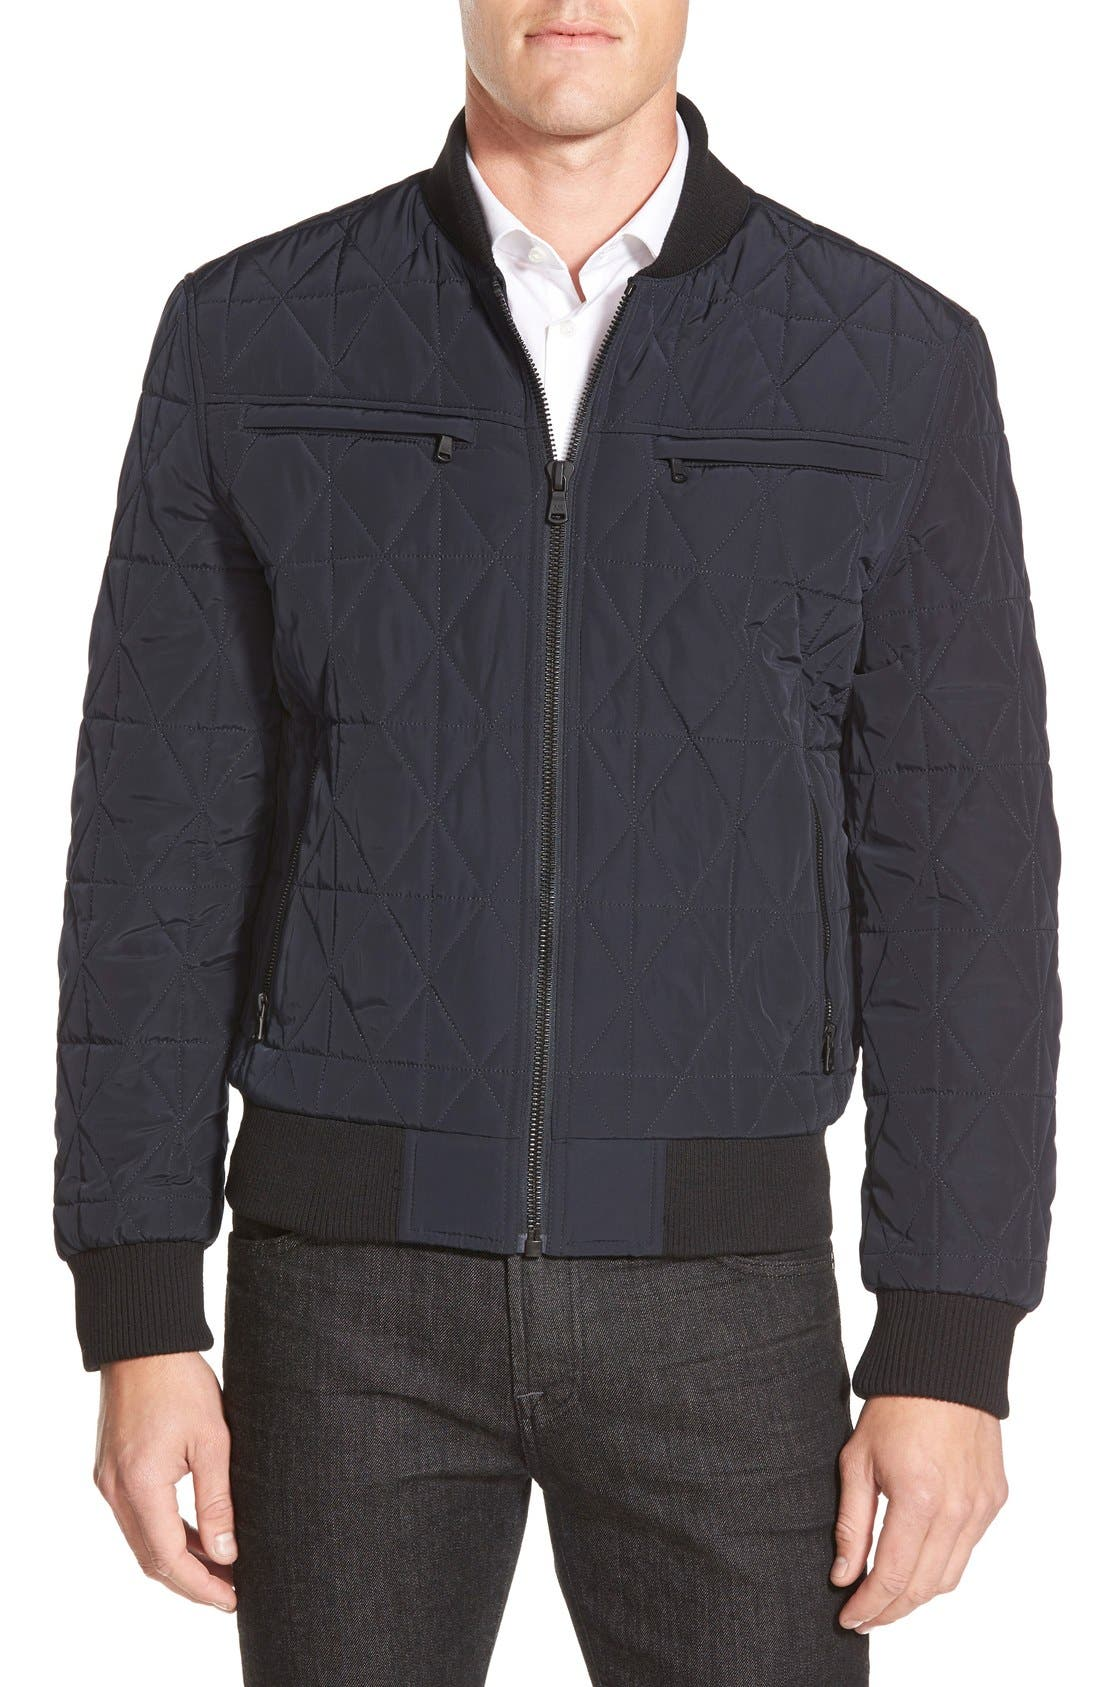 Diamond Quilted Zip Front Jacket,                             Main thumbnail 1, color,                             Midnight Blue